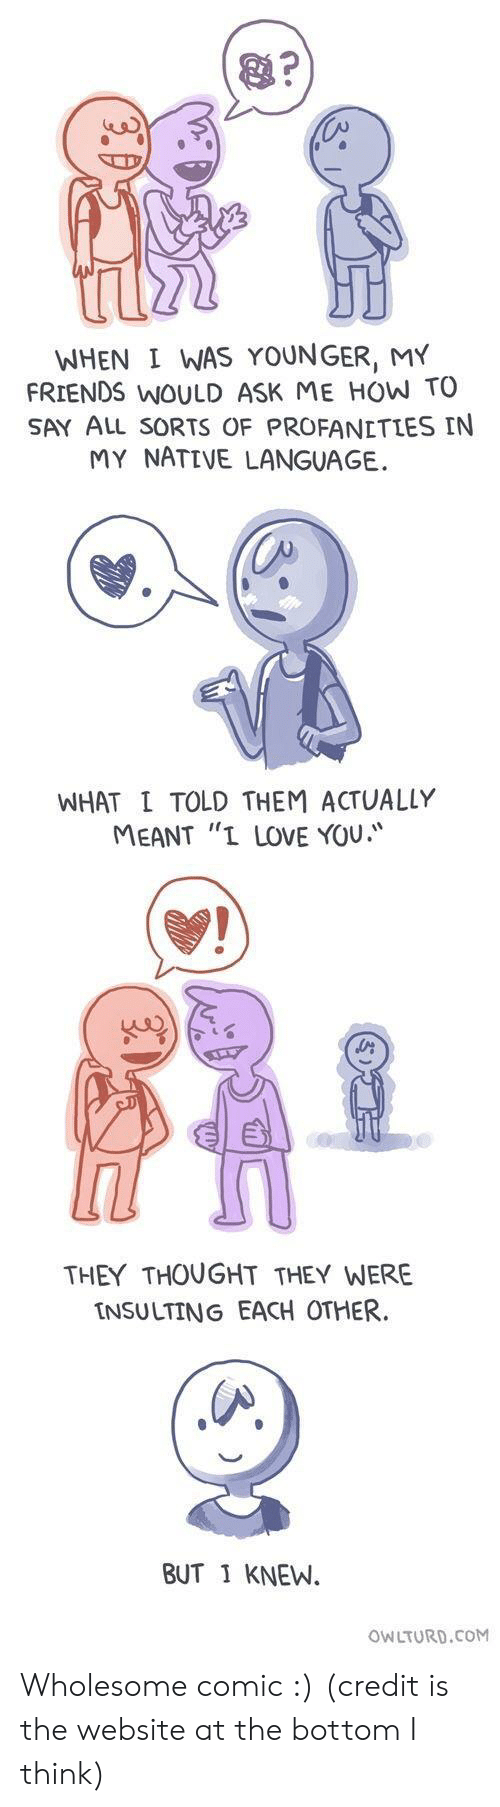 "Owlturd: WHEN I WAS YOUNGER, MY  FRIENDS WOULD ASK ME HOW TO  SAY ALL sORTS OF PROFANETLES IN  MY NATIVE LANGUAGE.  WHAT L TOLD THEM ACTUALLY  MEANT ""I LOVE YOU.  THEY THOUGHT THEY WERE  INSULTING EACH OTHER  BUT 1 KNEW.  OWLTURD.CoM Wholesome comic :) (credit is the website at the bottom I think)"